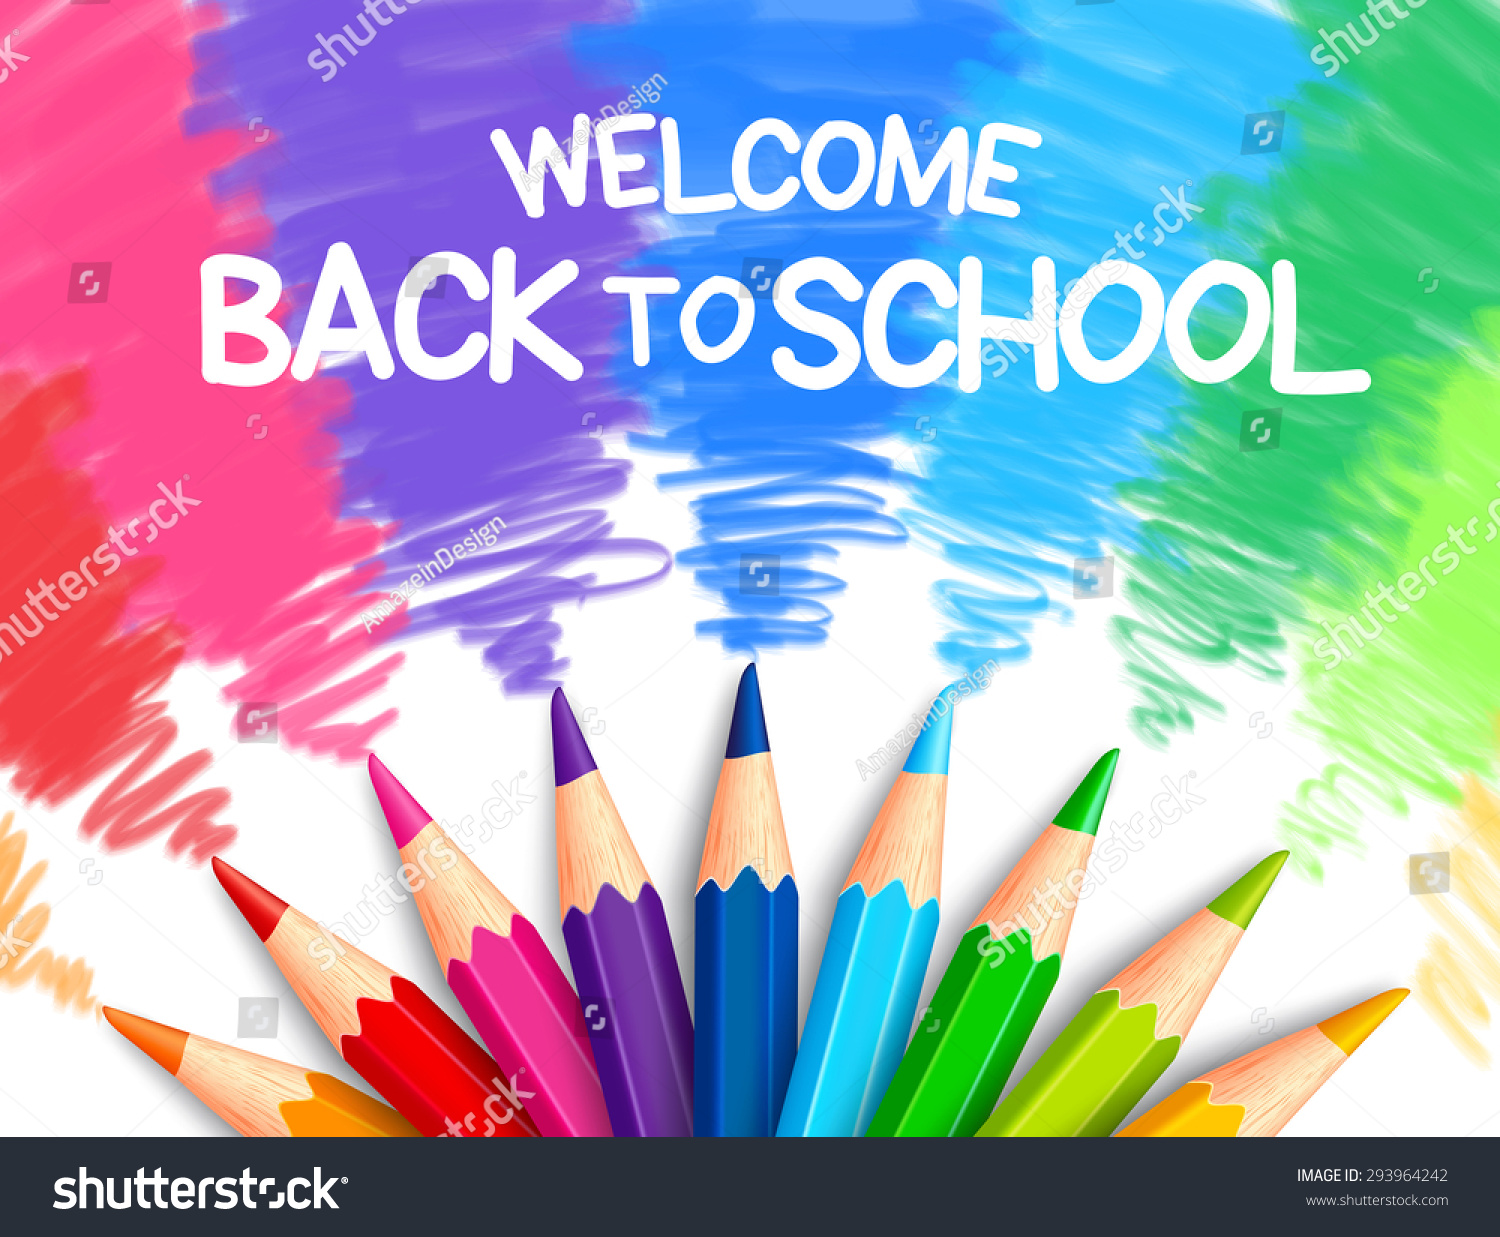 Realistic Set of Colorful Colored Pencils or Crayons with Multicolored Brush Strokes Background in Back to School Title Vector Illustration